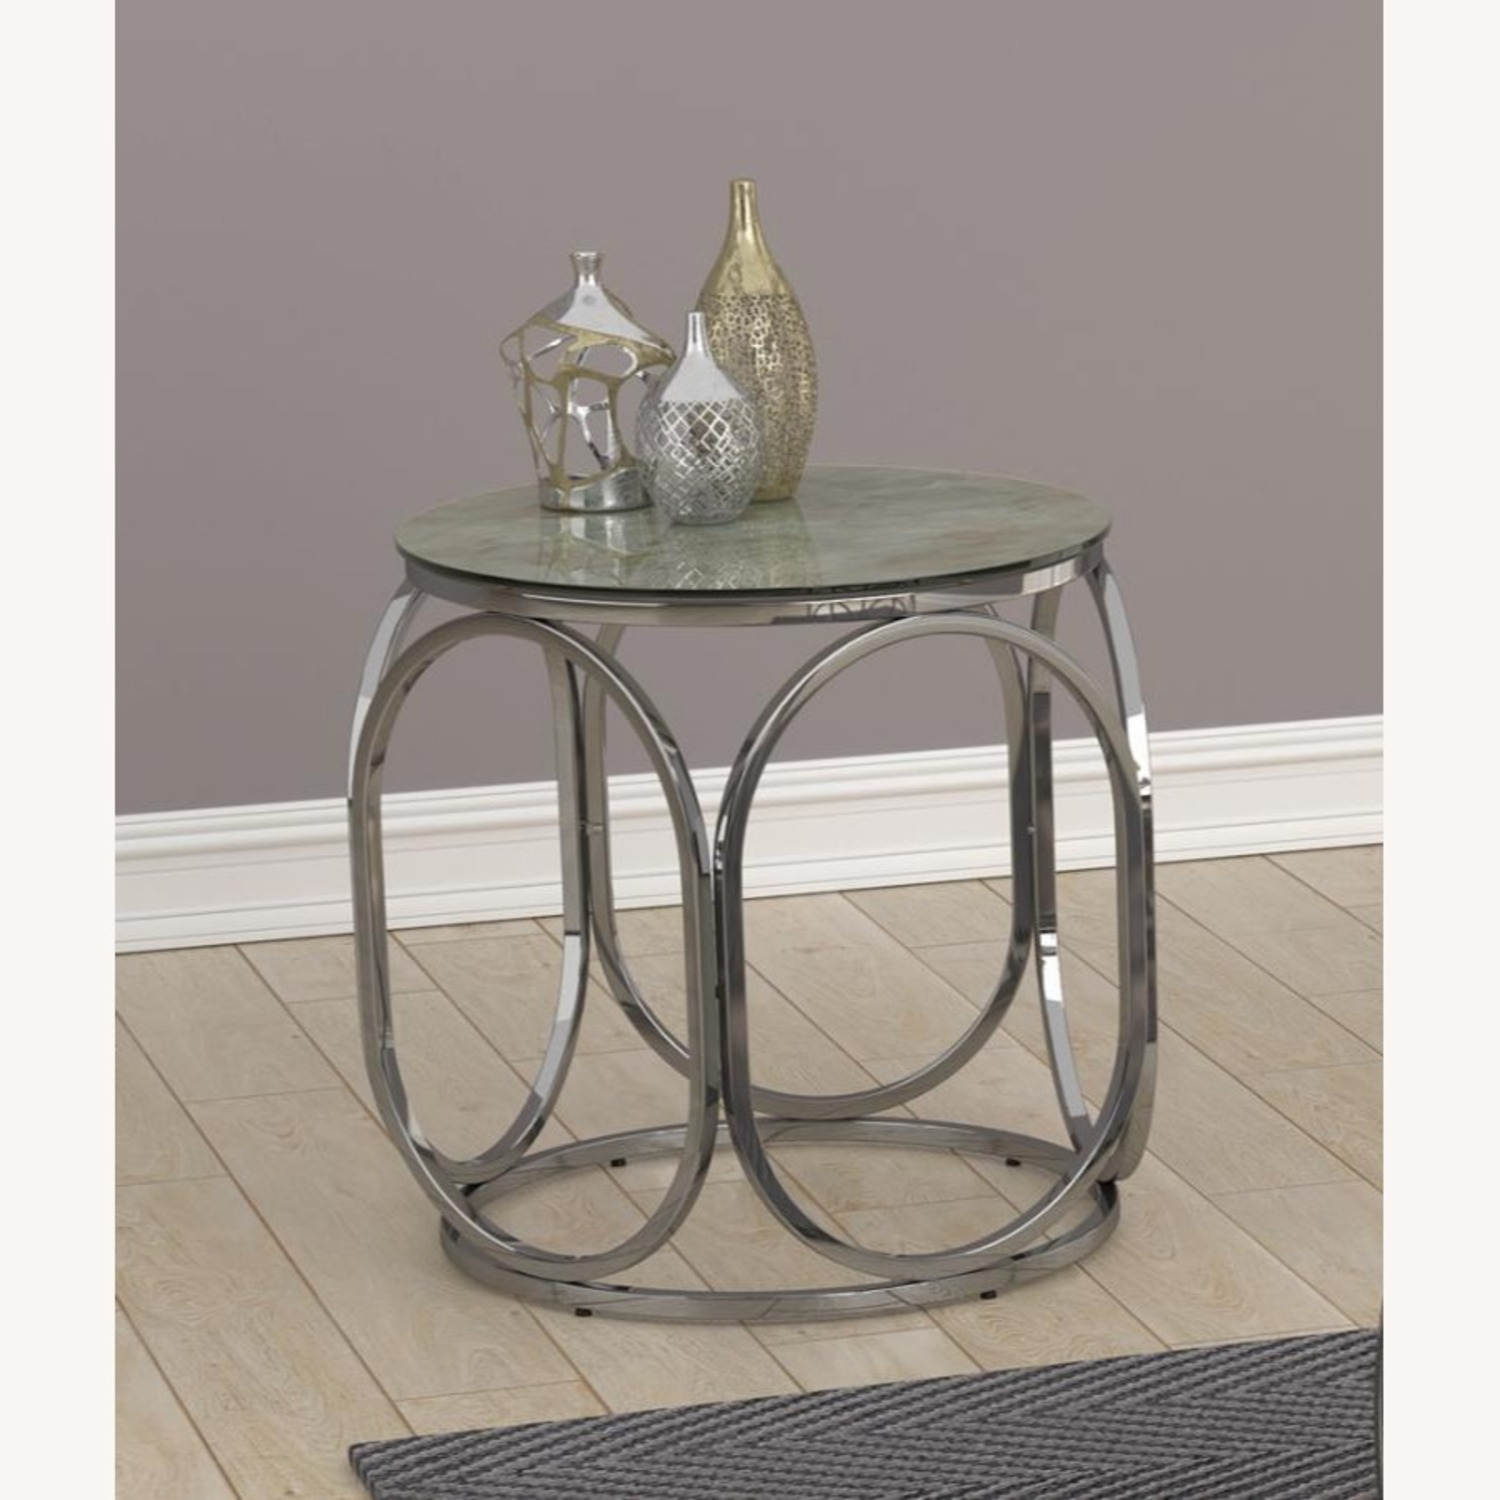 Circular Shapes End Table In Chrome Metal Finish - image-3